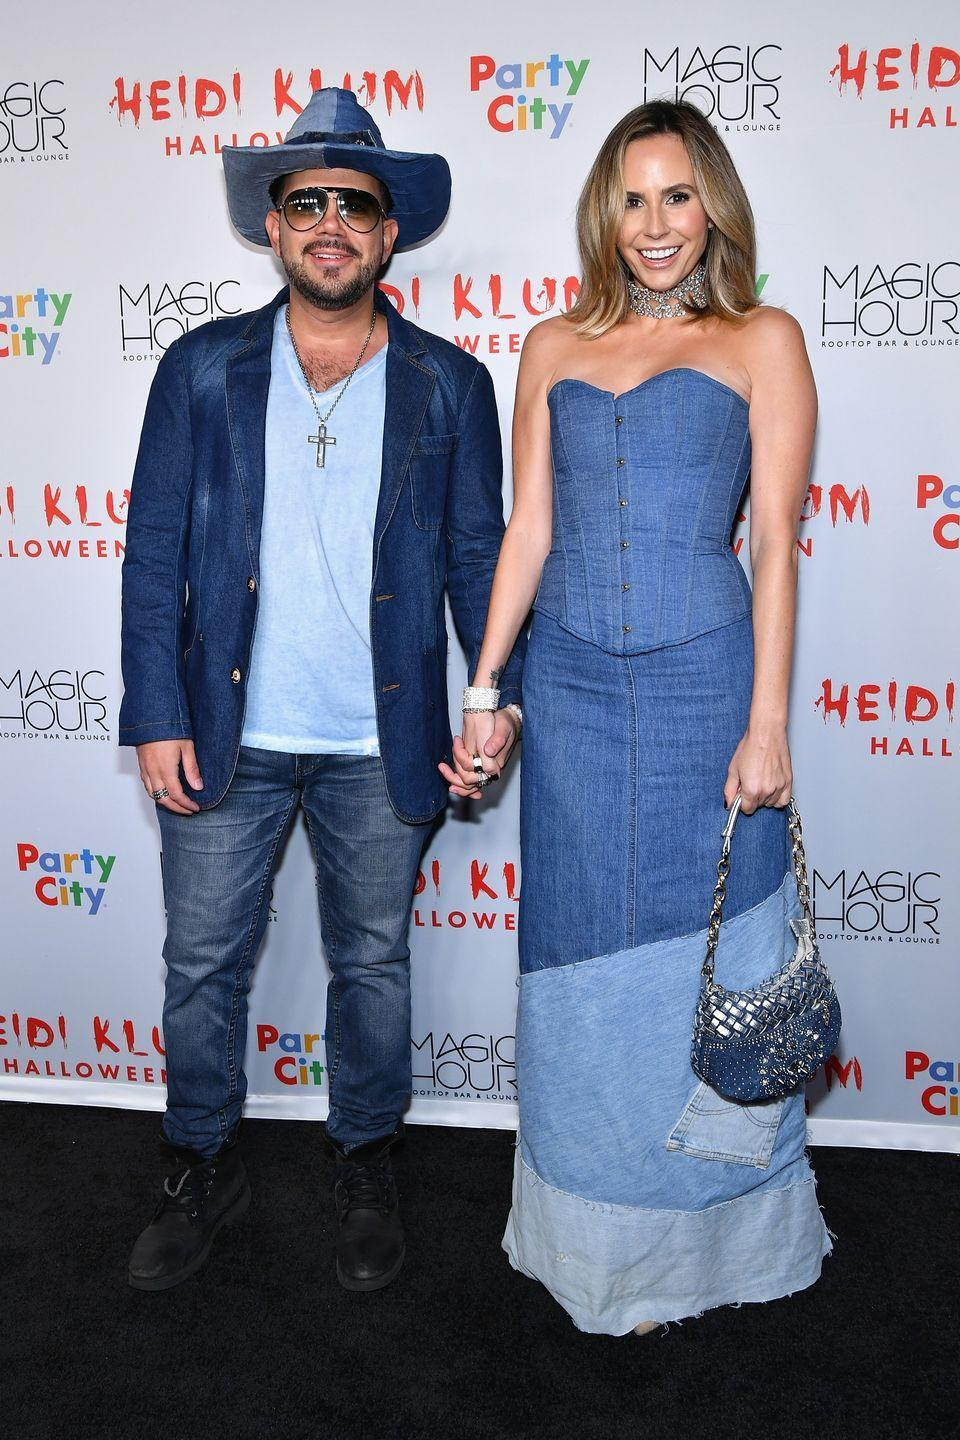 """<p>Remember Justin Timberlake's and Britney Spears's matching all-denim (""""Canadian tuxedo"""") outfits? Now you do, thanks to David Batista and Keltie Knight's costumes at Heidi Klum's famous Halloween celebration in 2018.</p>"""